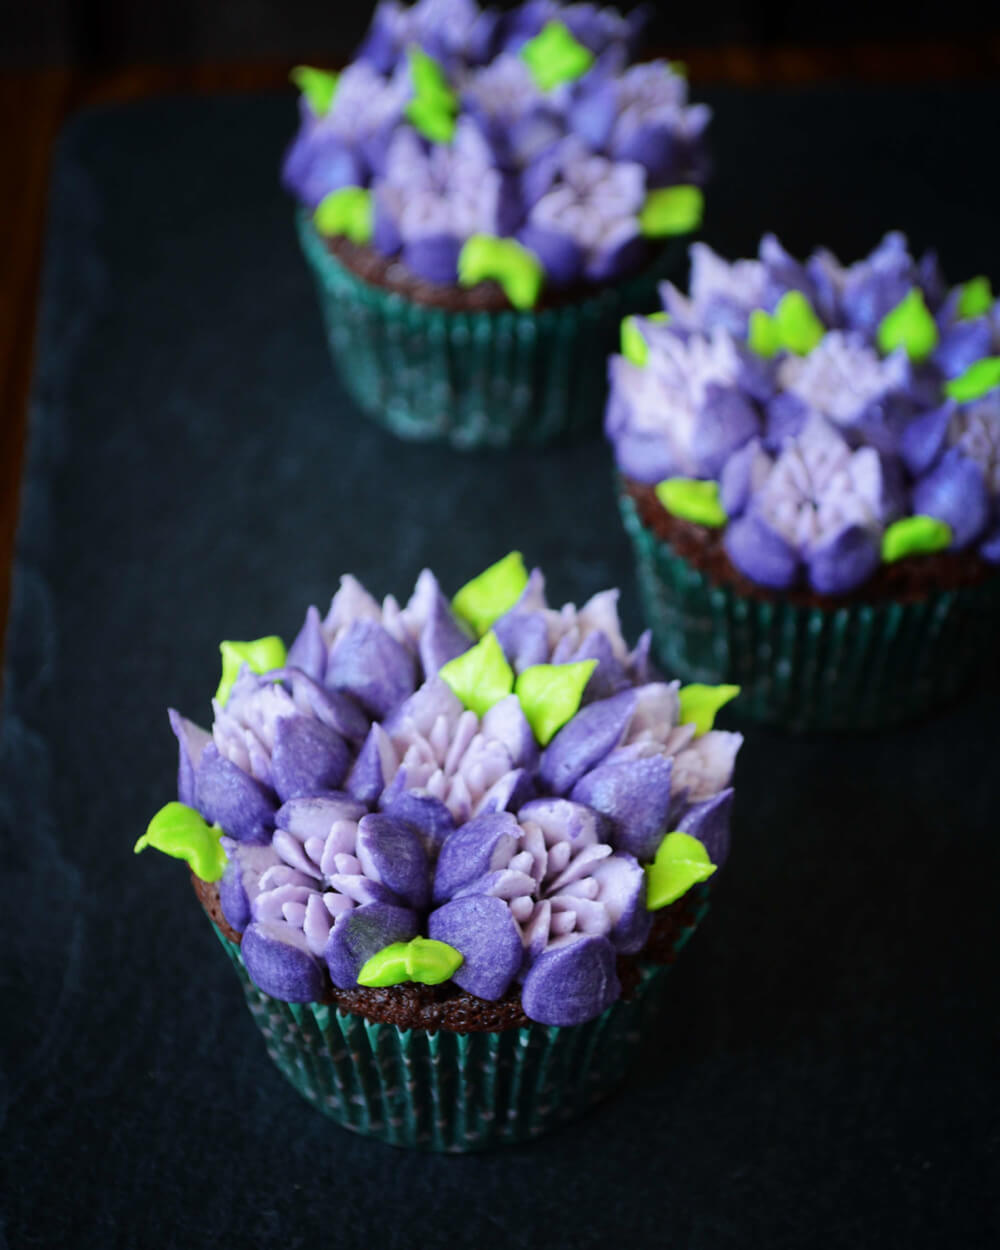 Tofarvede blomster cupcakes